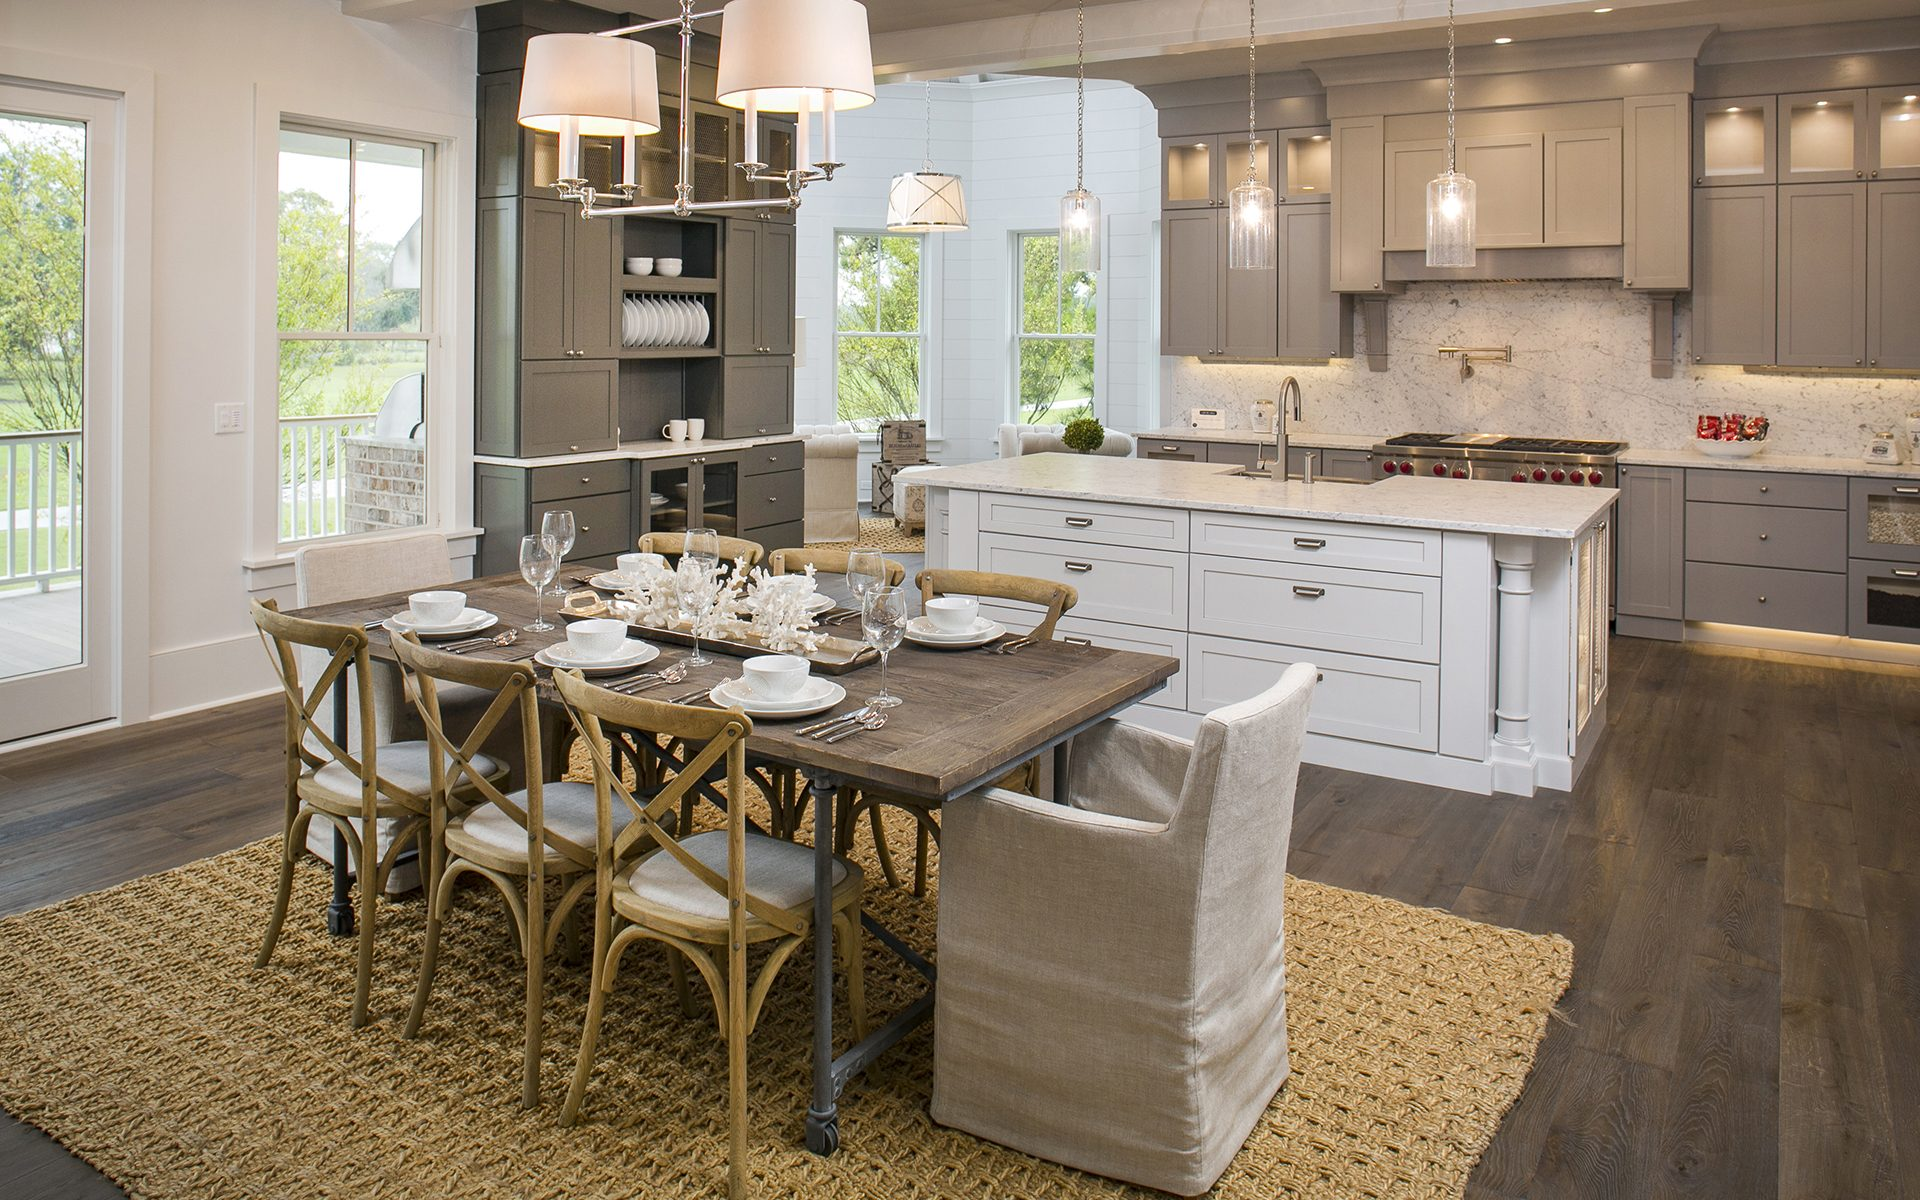 Awesome Classic Design Homes Billings Mt Images - Interior Design ...